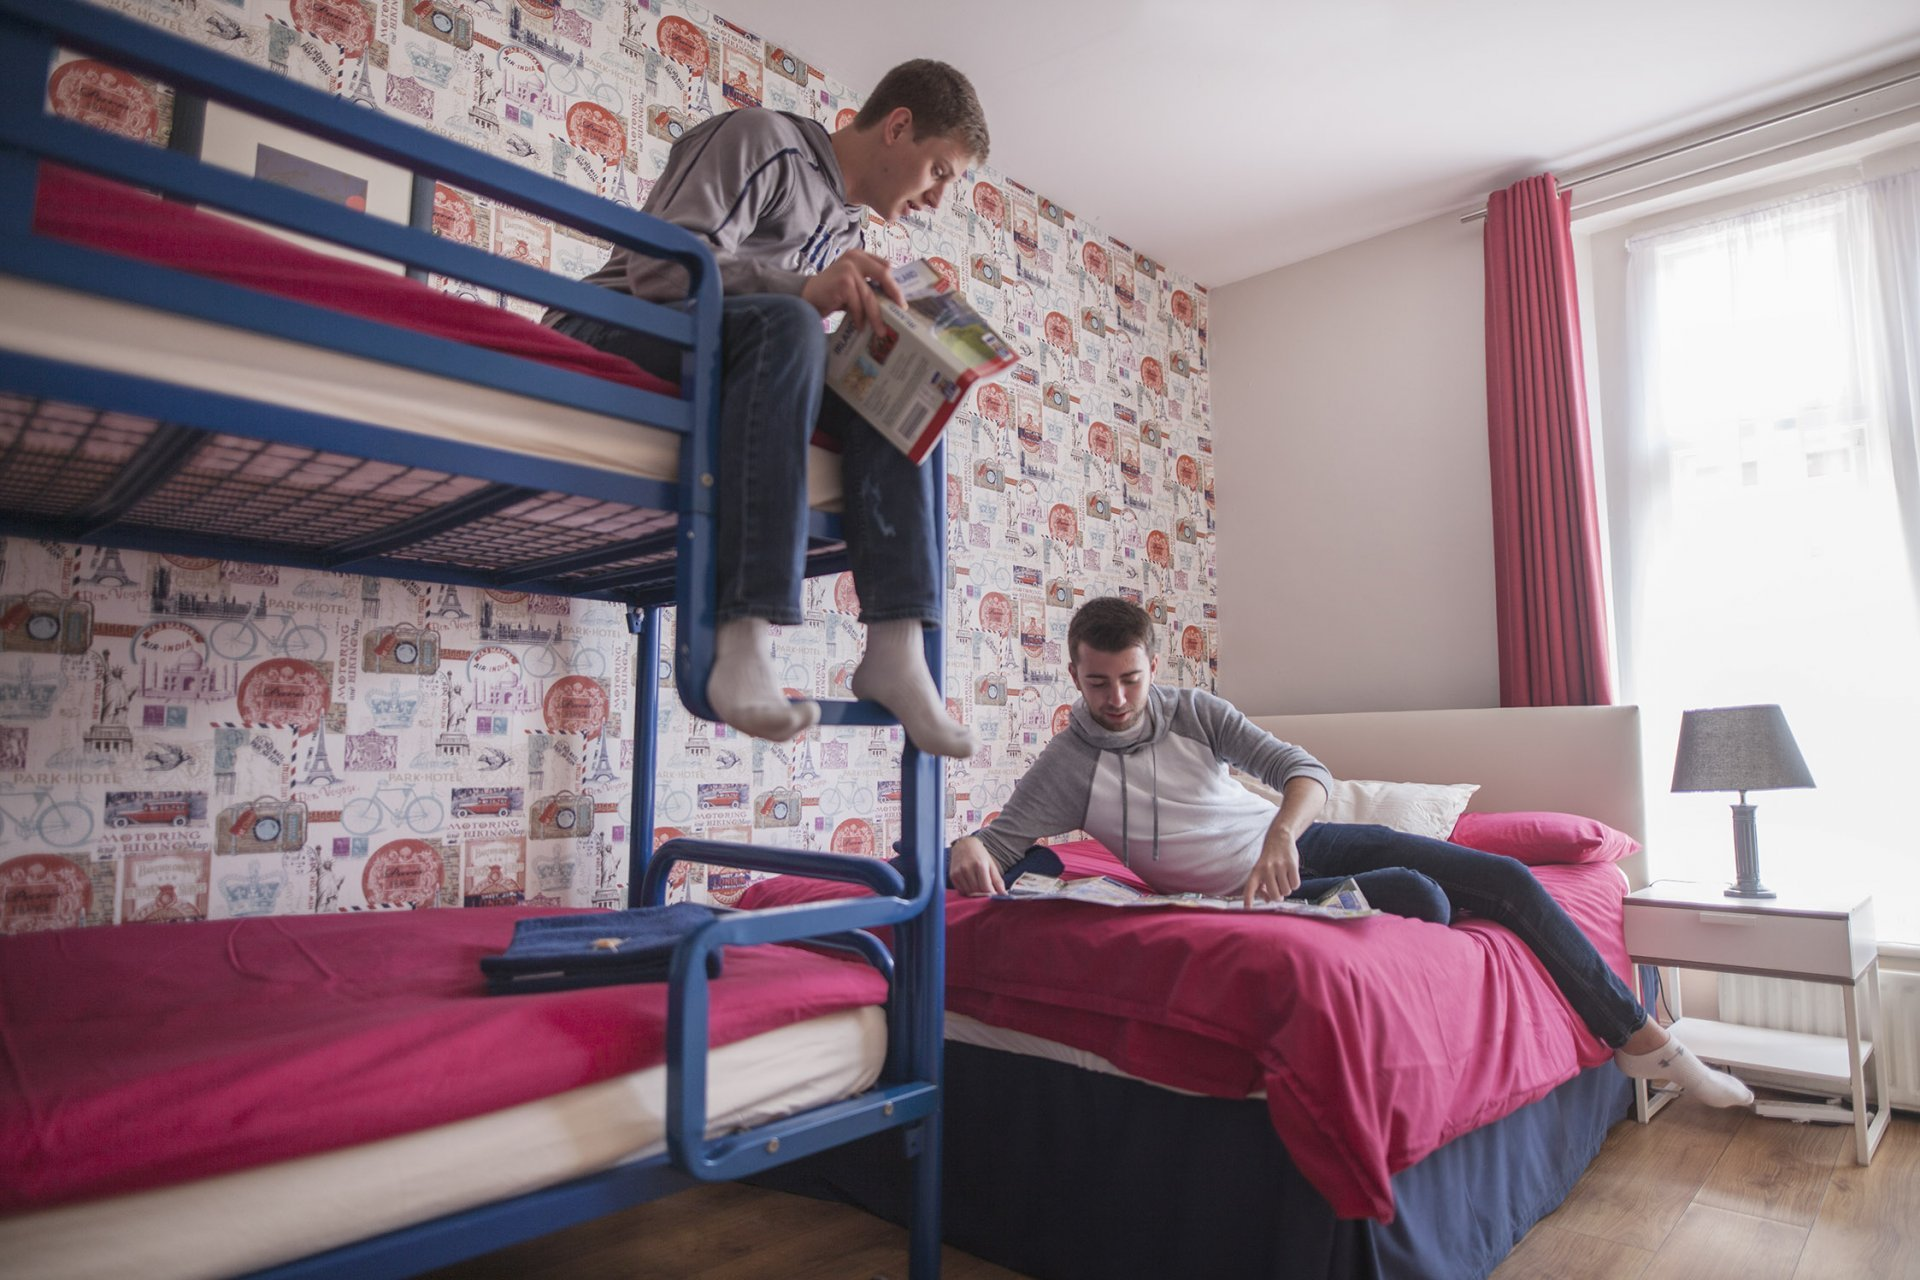 Tourist Students Chatting in Hostel Room